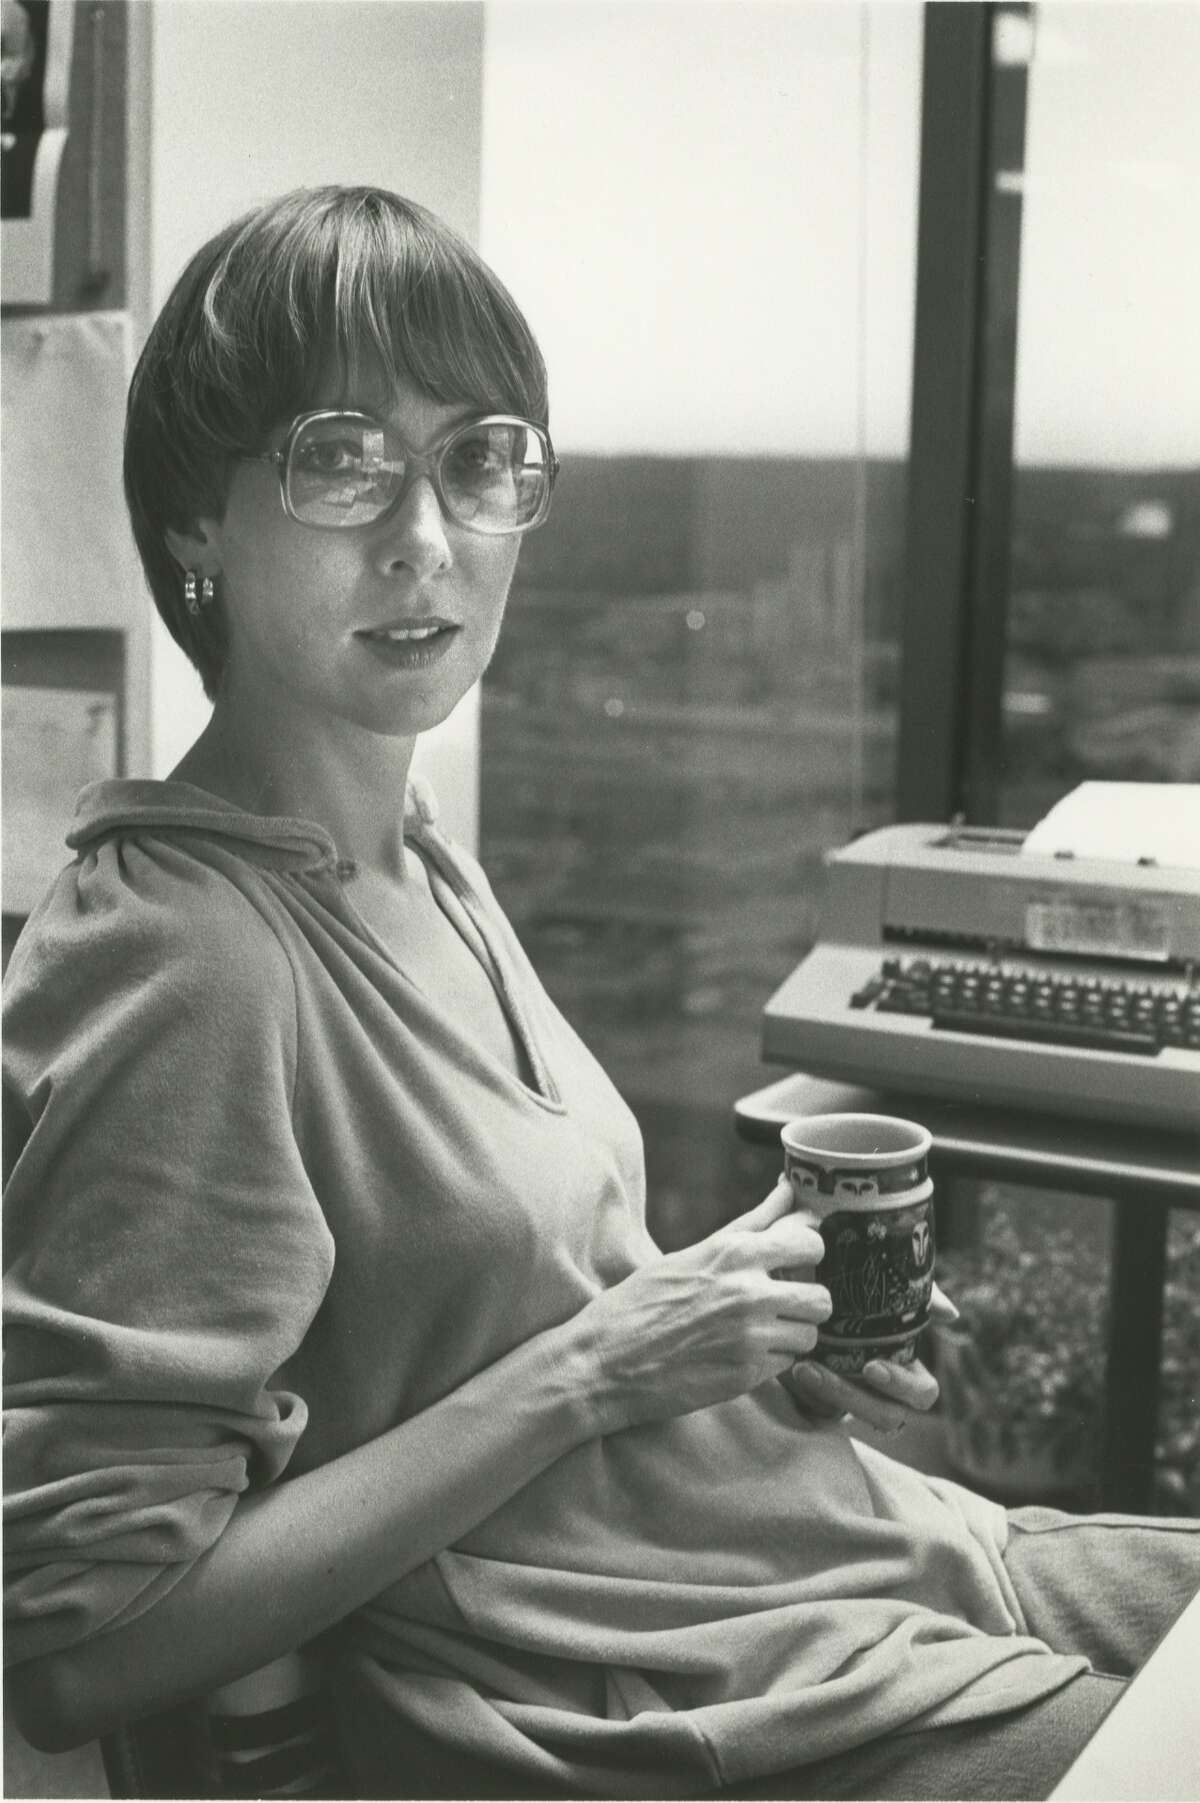 Pat Sharpe, current executive editor, restaurant critic and food writer at Texas Monthly earlier in her career at the magazine.